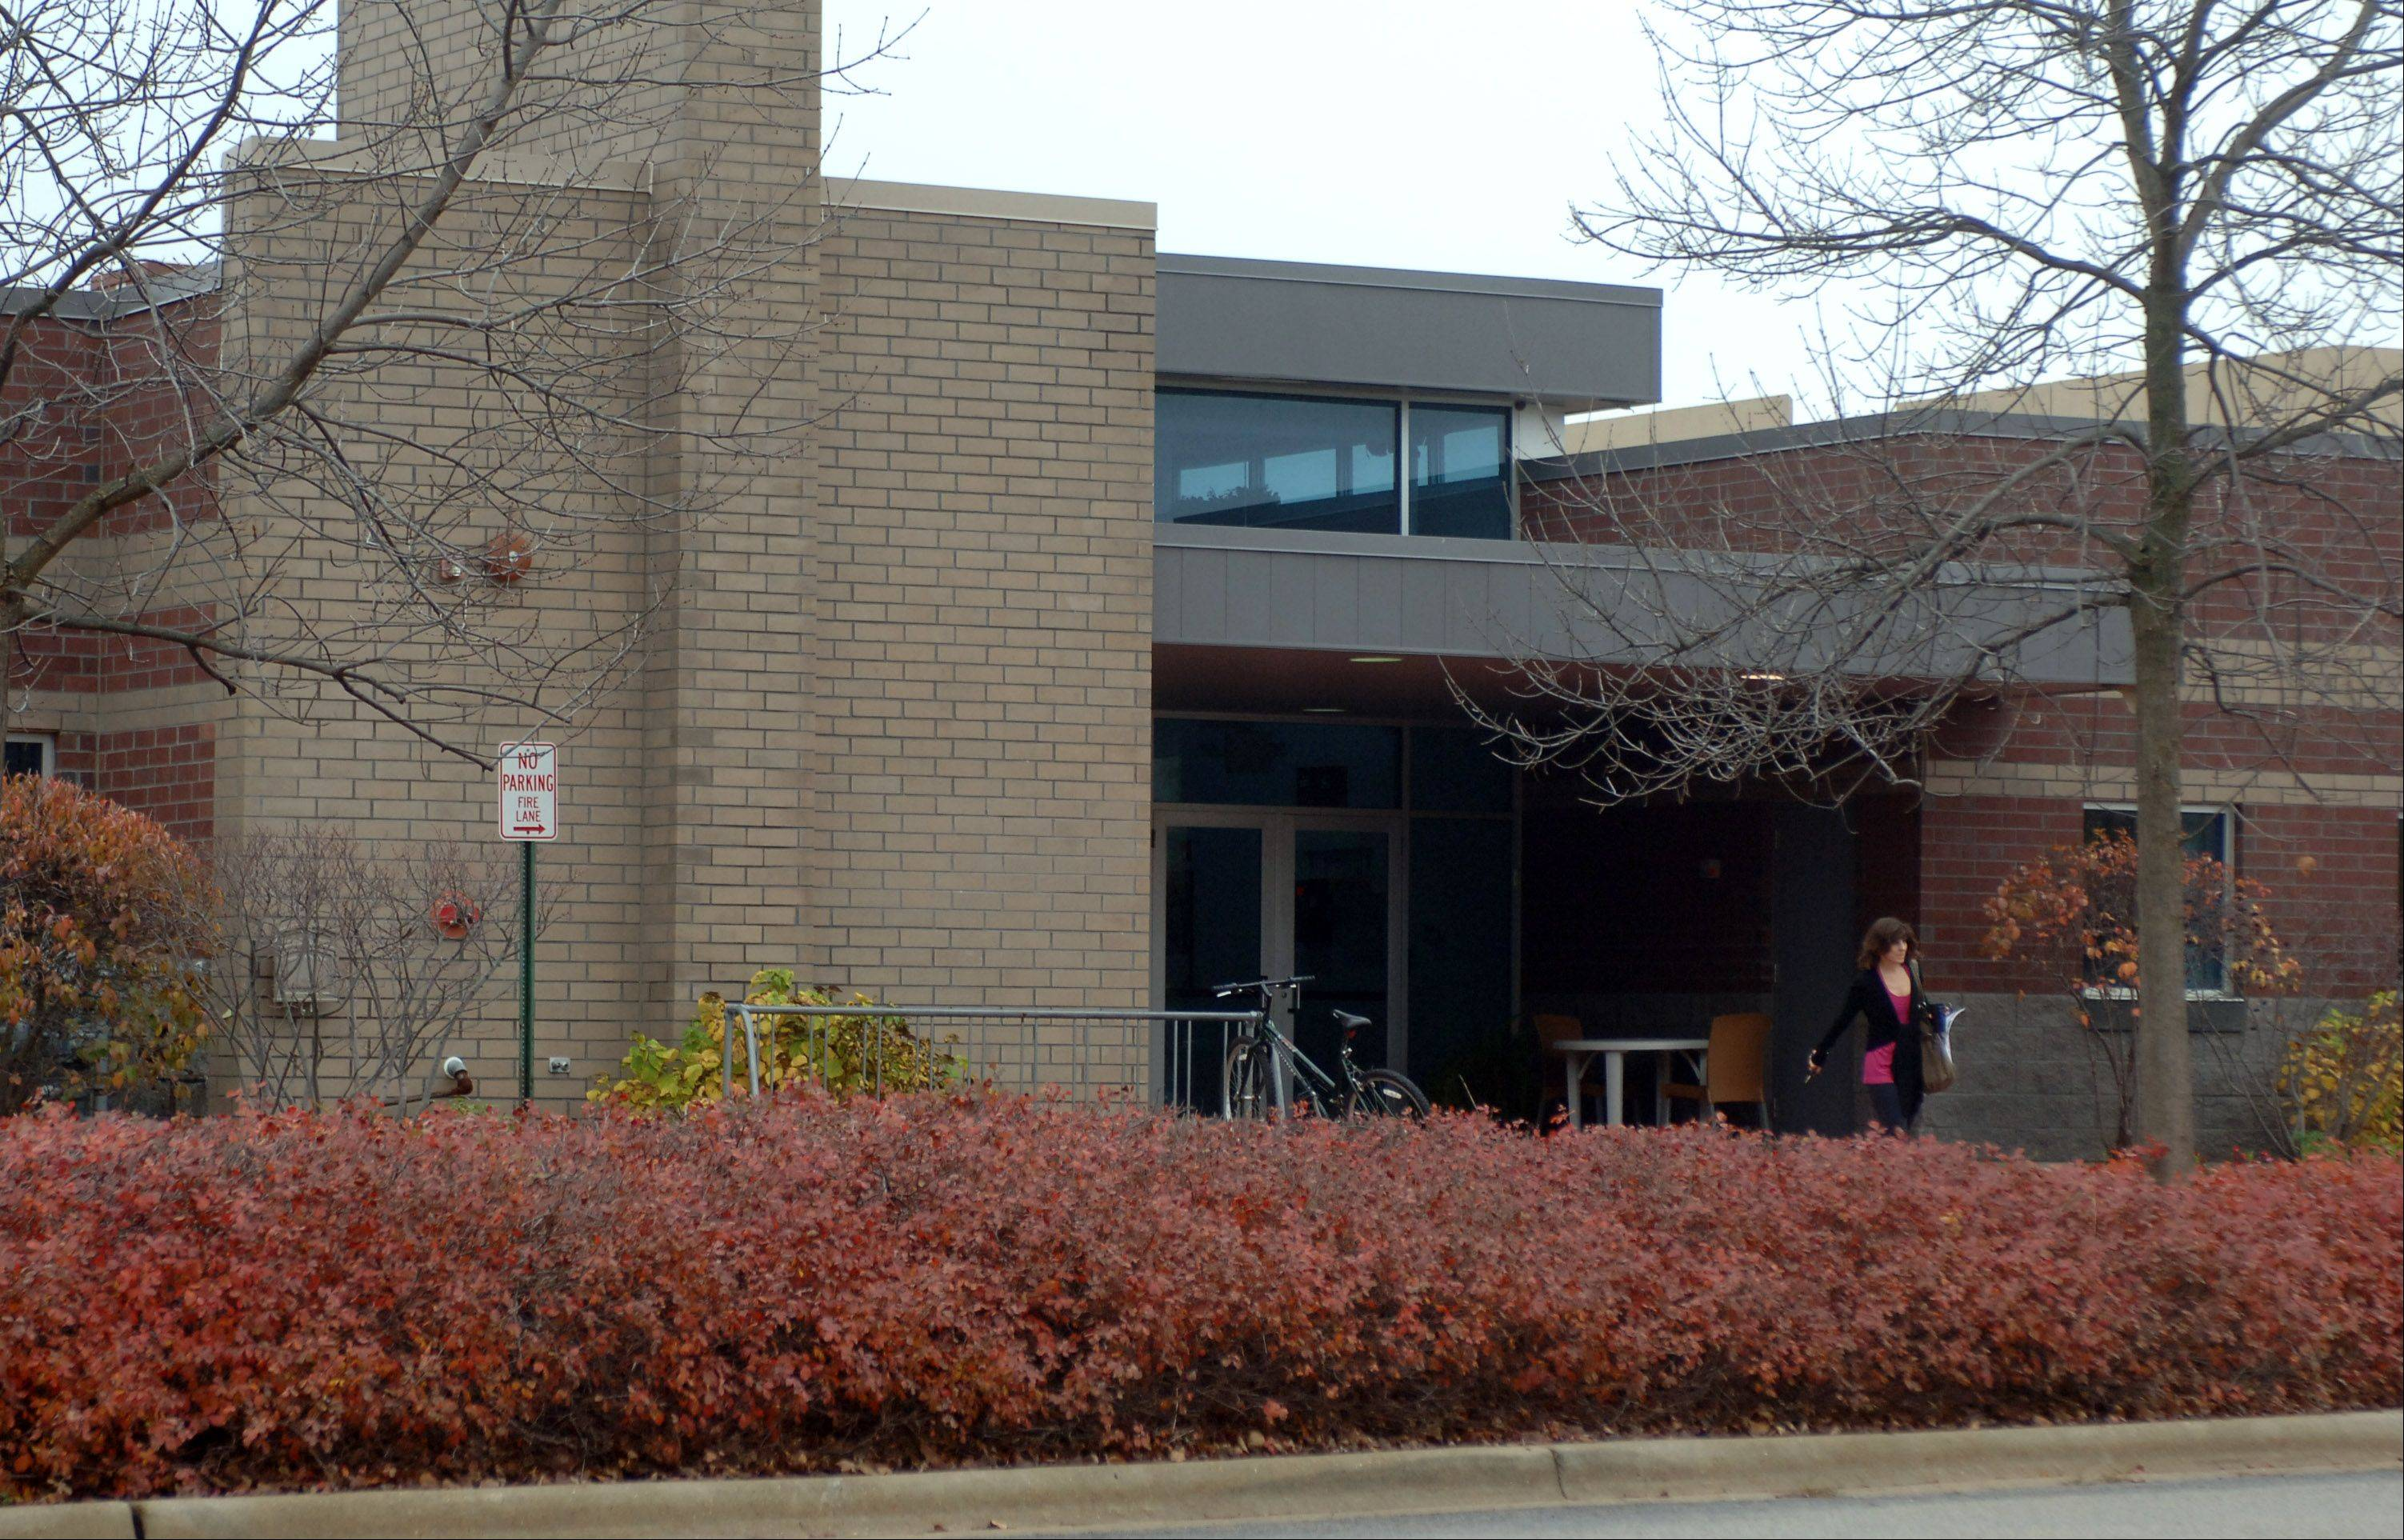 Vernon Hills parks to offer $2 million for YMCA building